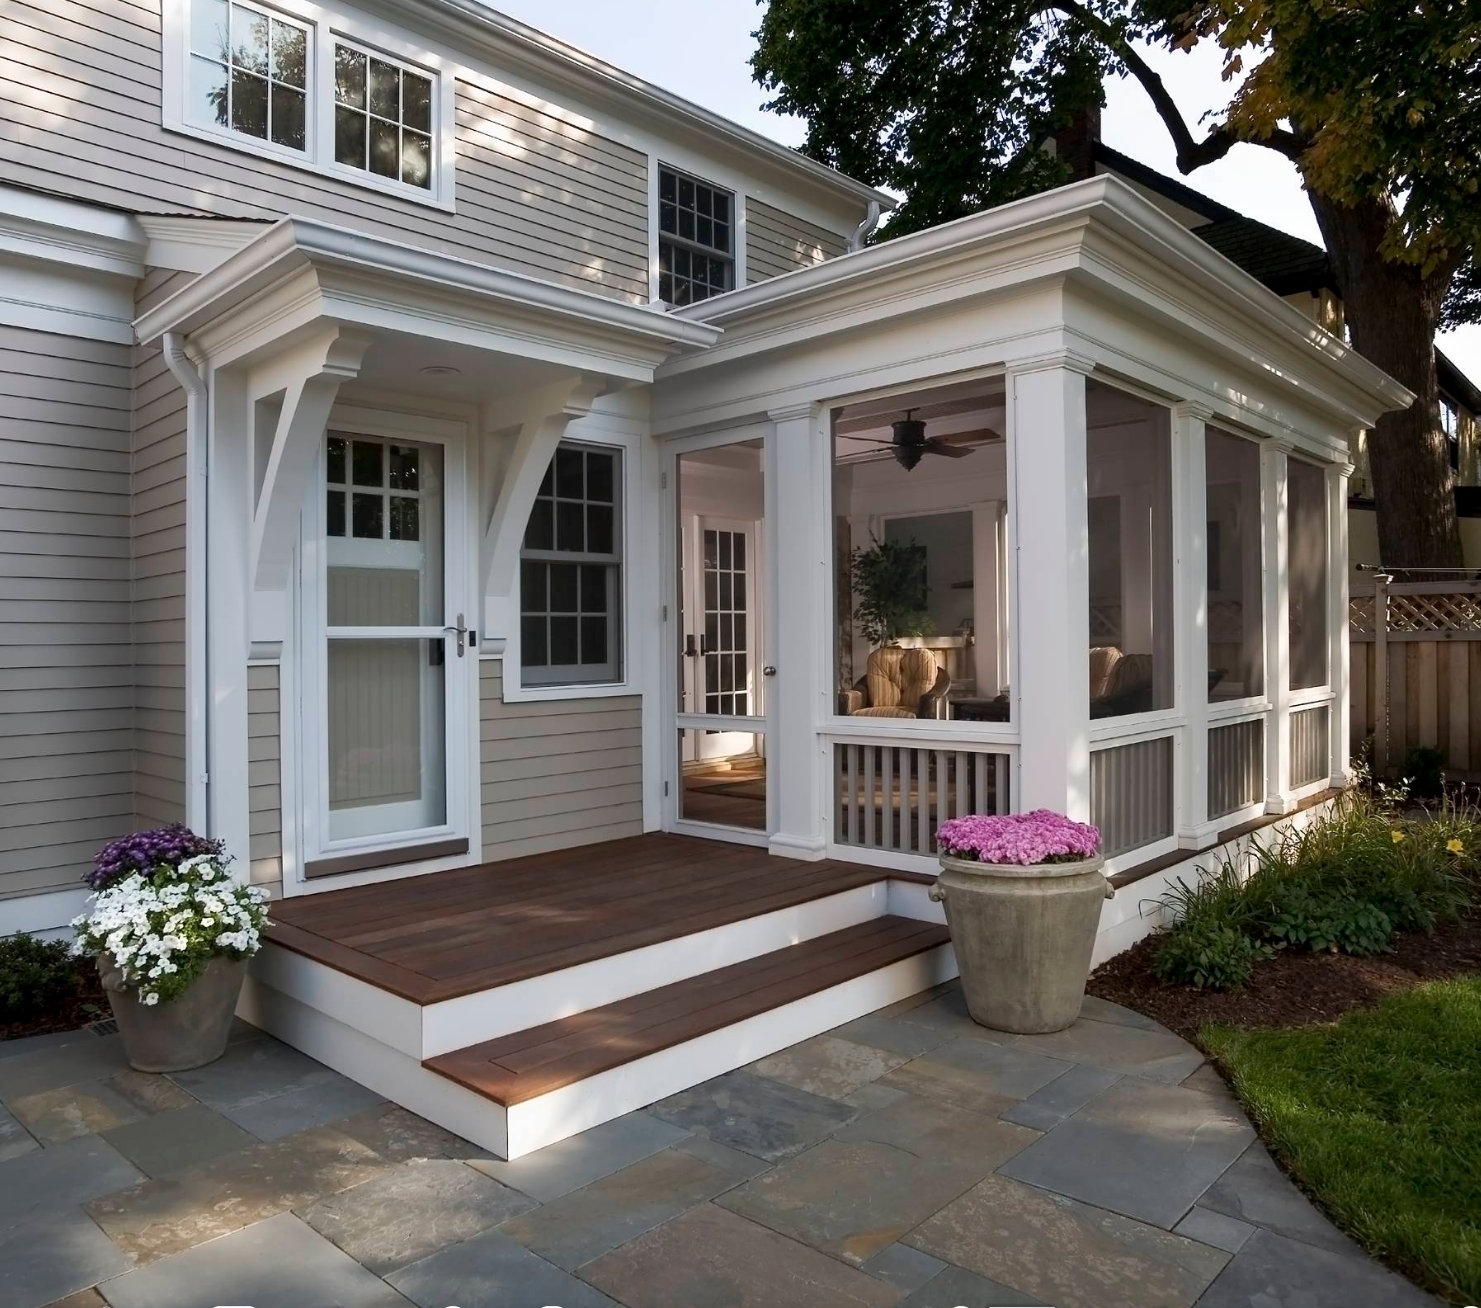 screened in porch ideas beautiful screened porch GDOHXVE